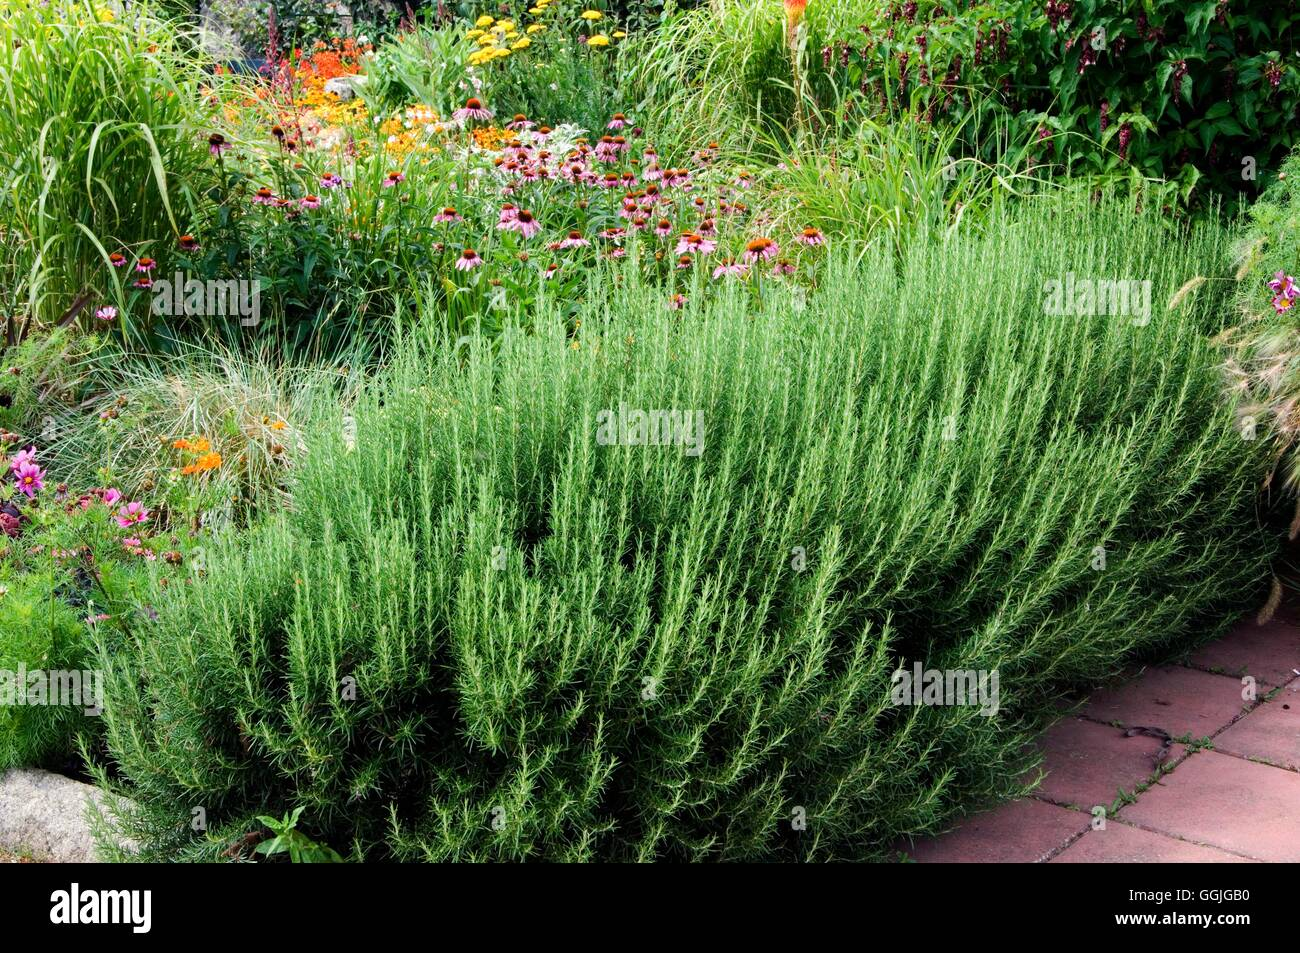 Rosemary Hedge Stock Photos \u0026 Rosemary Hedge Stock Images - Alamy